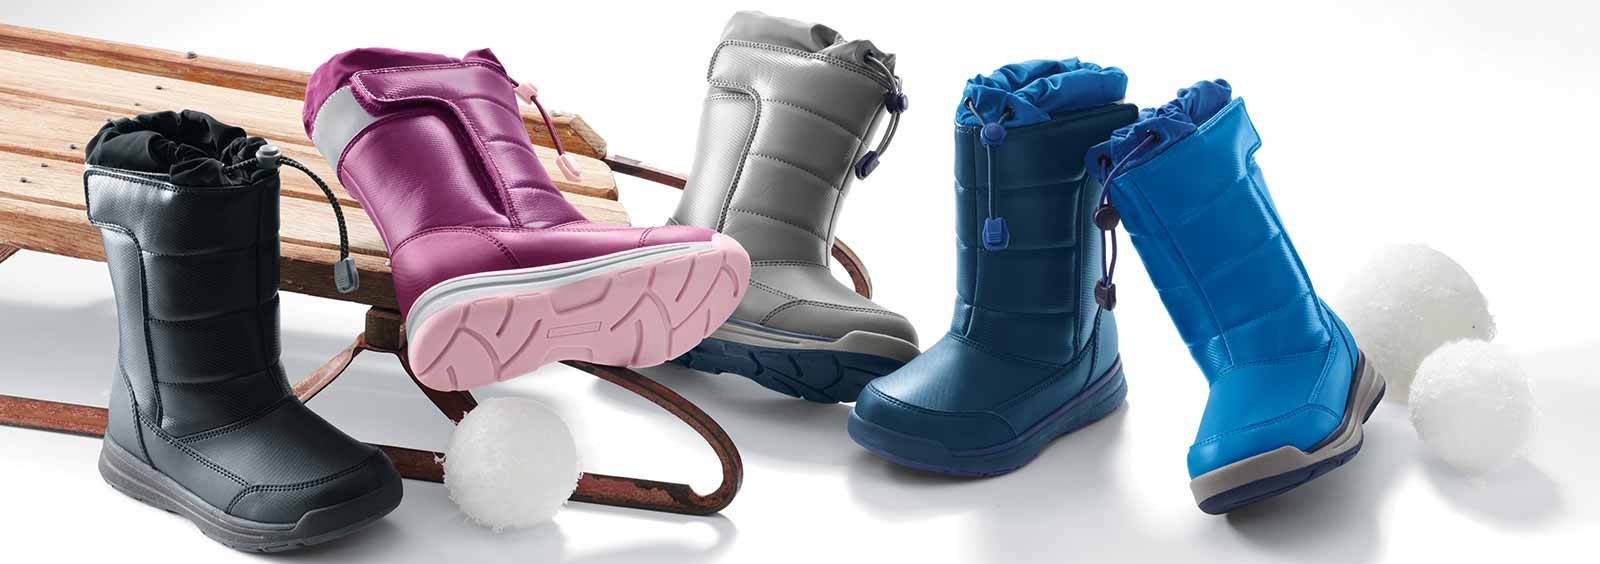 What are the Best Snow Boots for Toddlers?